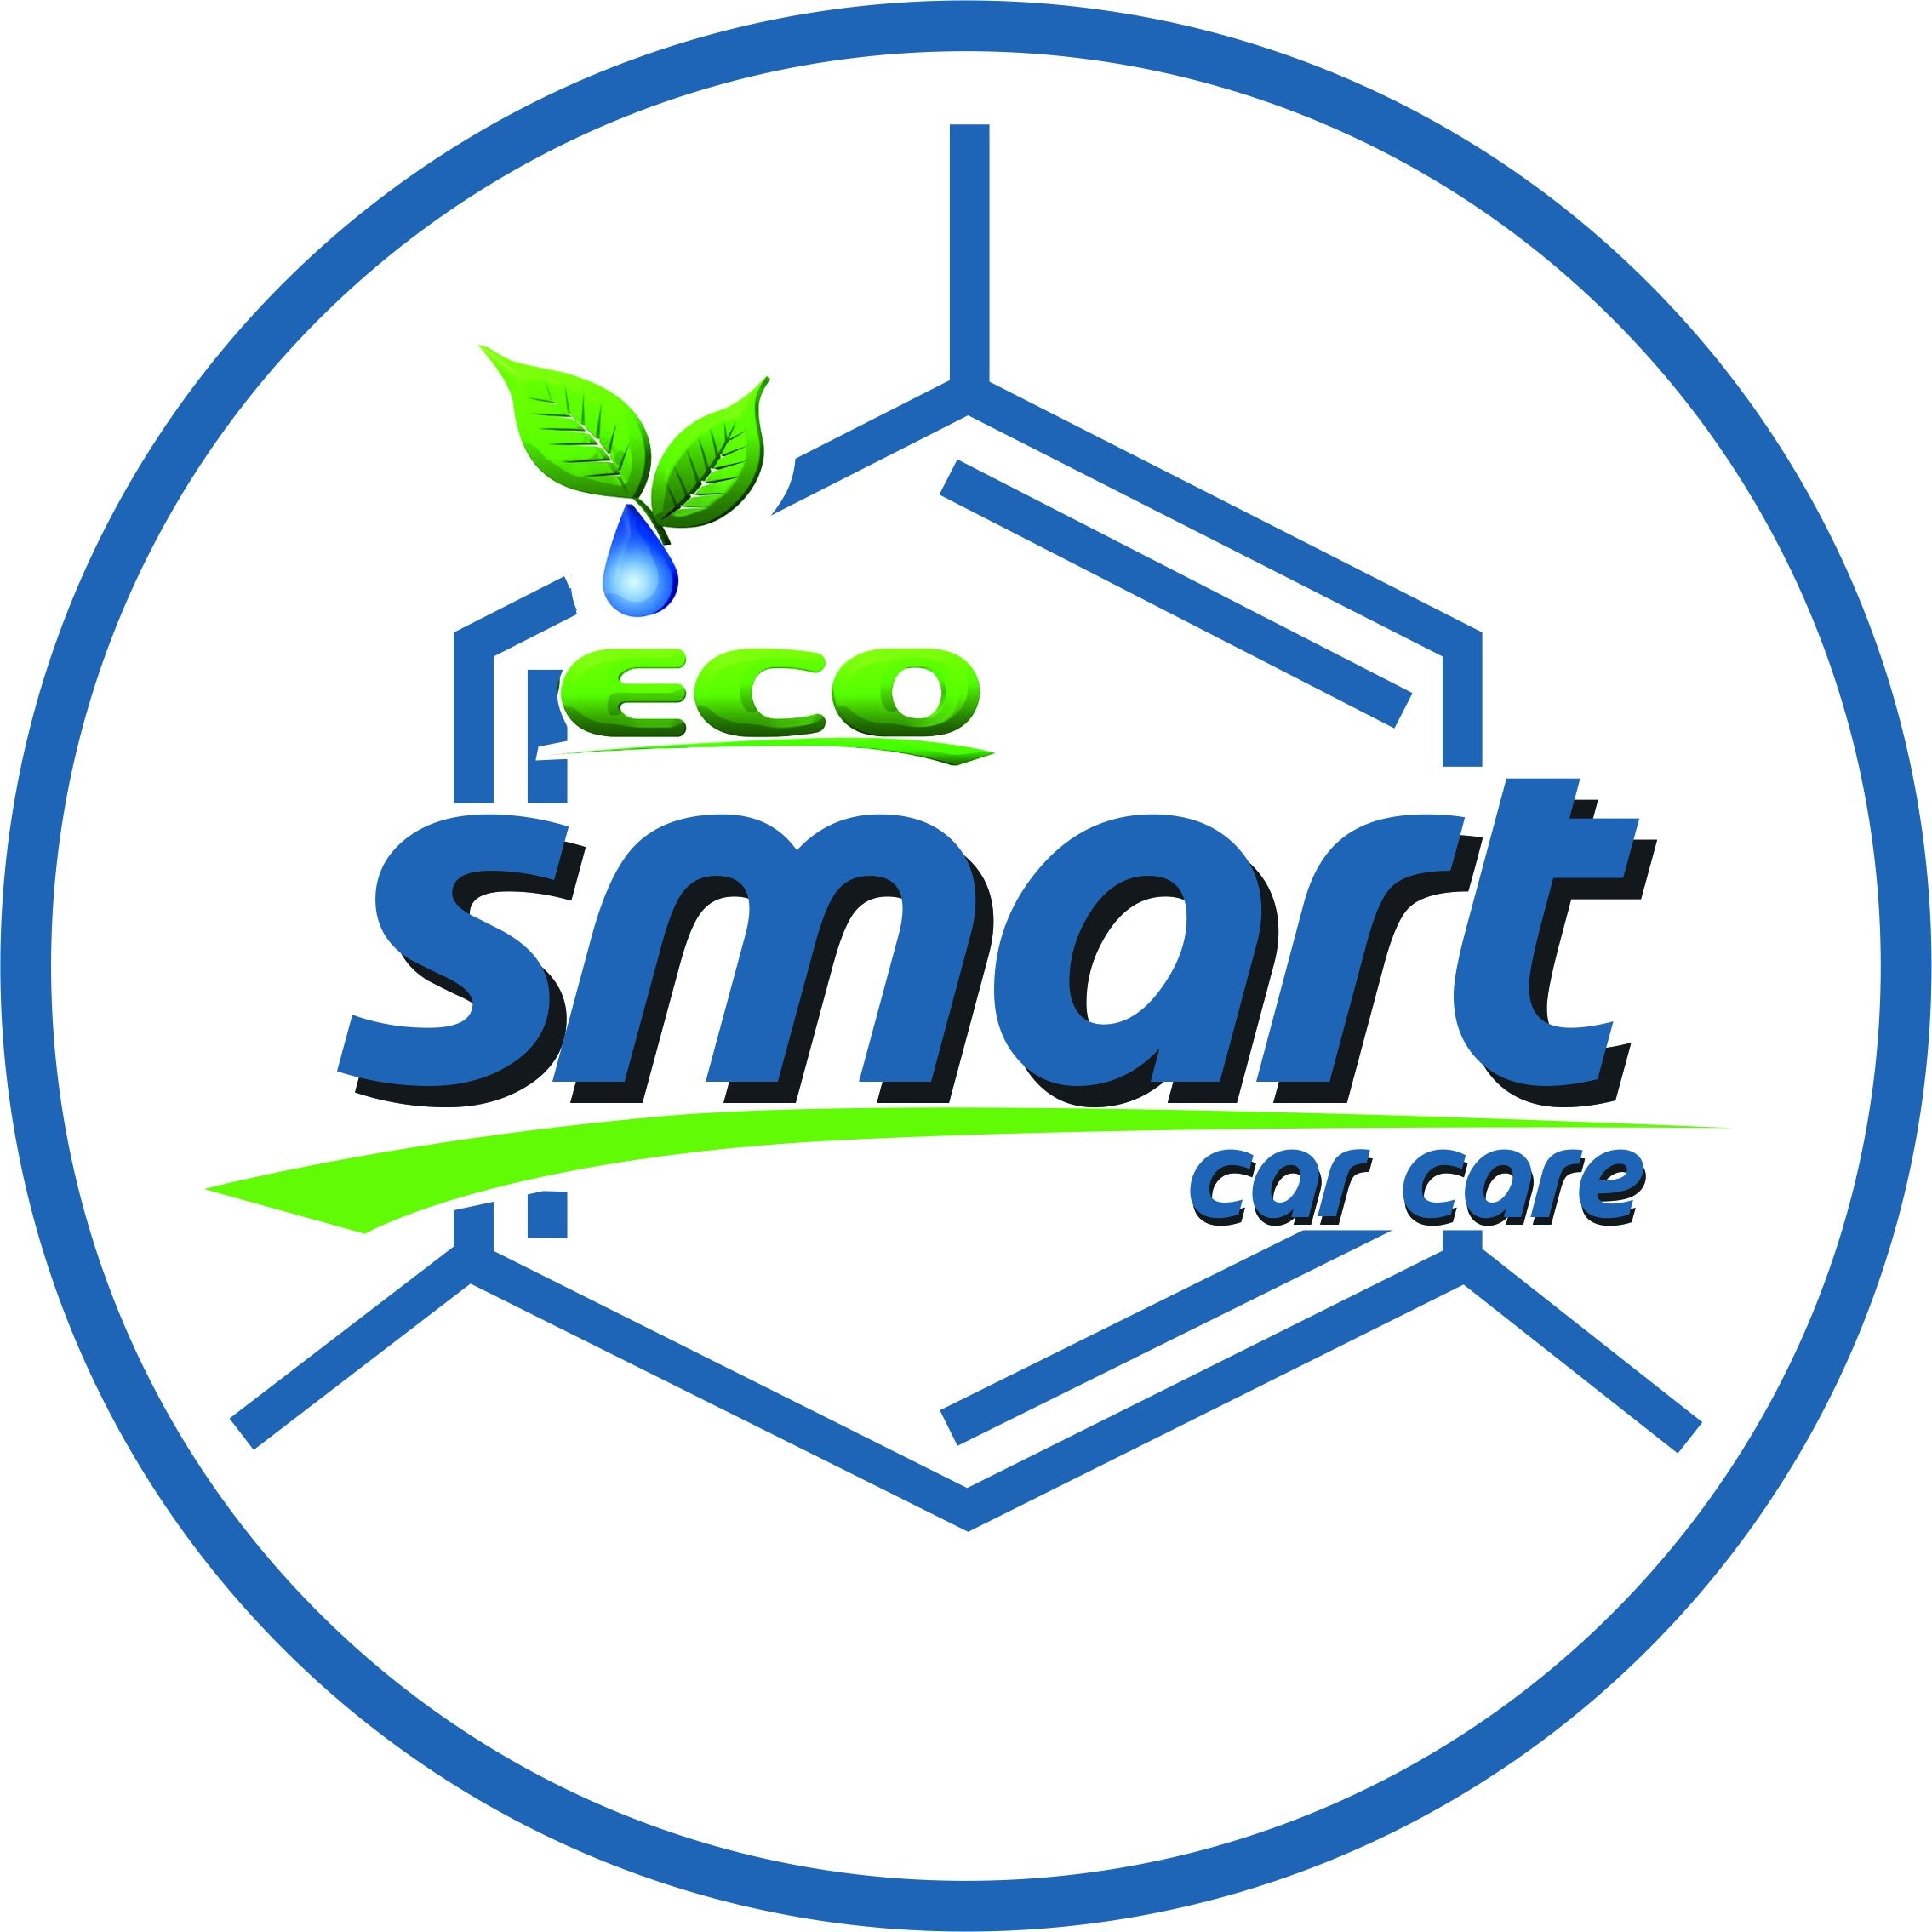 Eco Smart Car Care